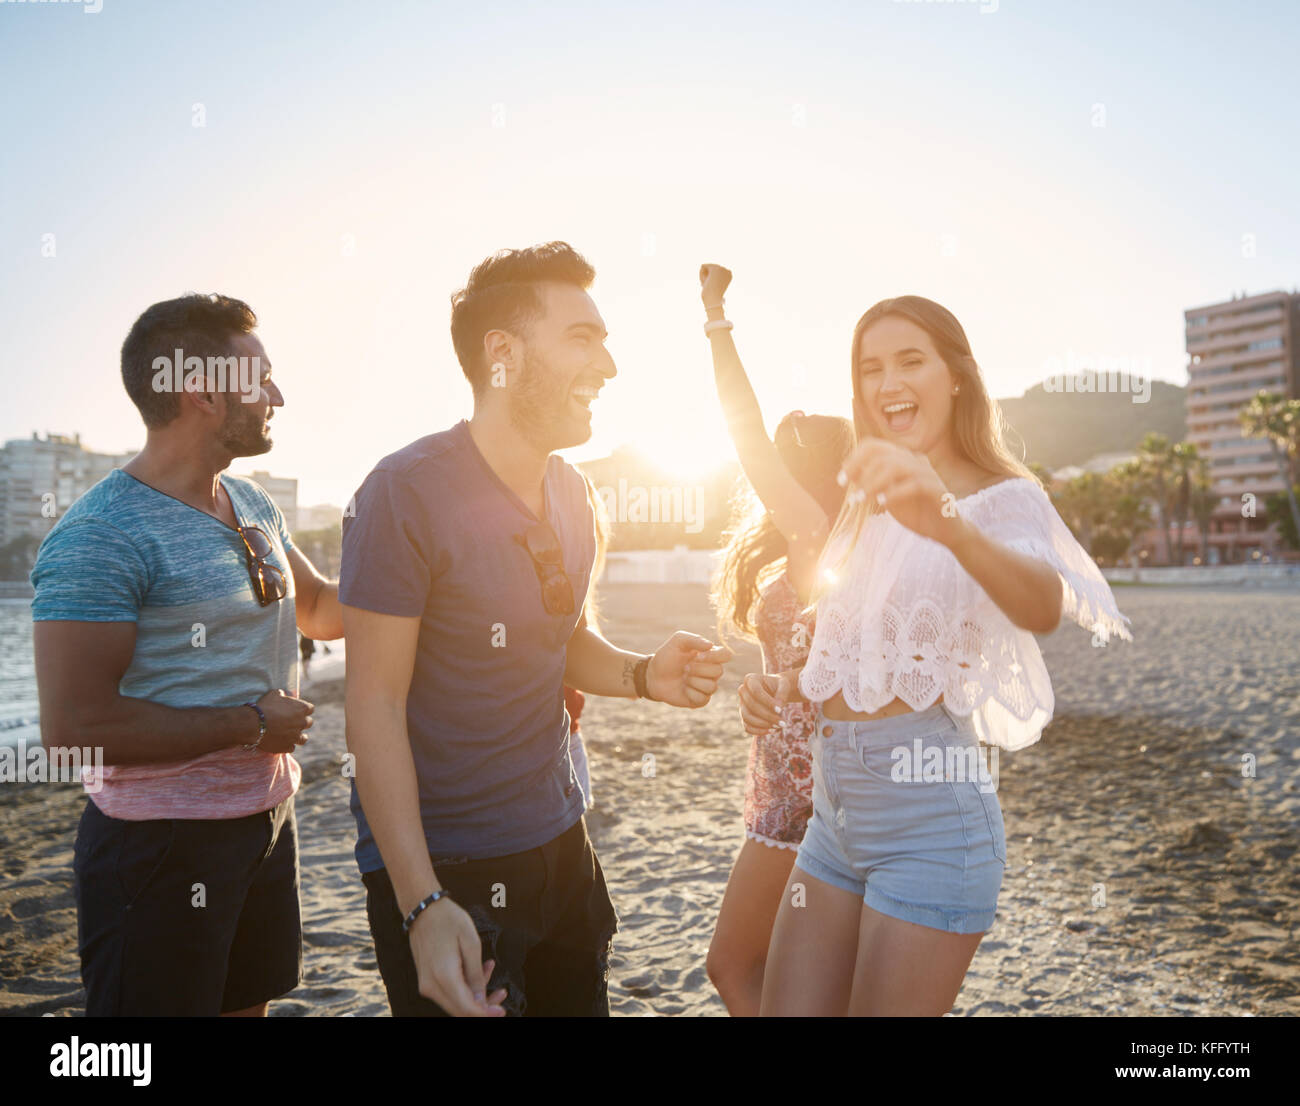 Portrait of young woman Dancing with Friends on beach Photo Stock